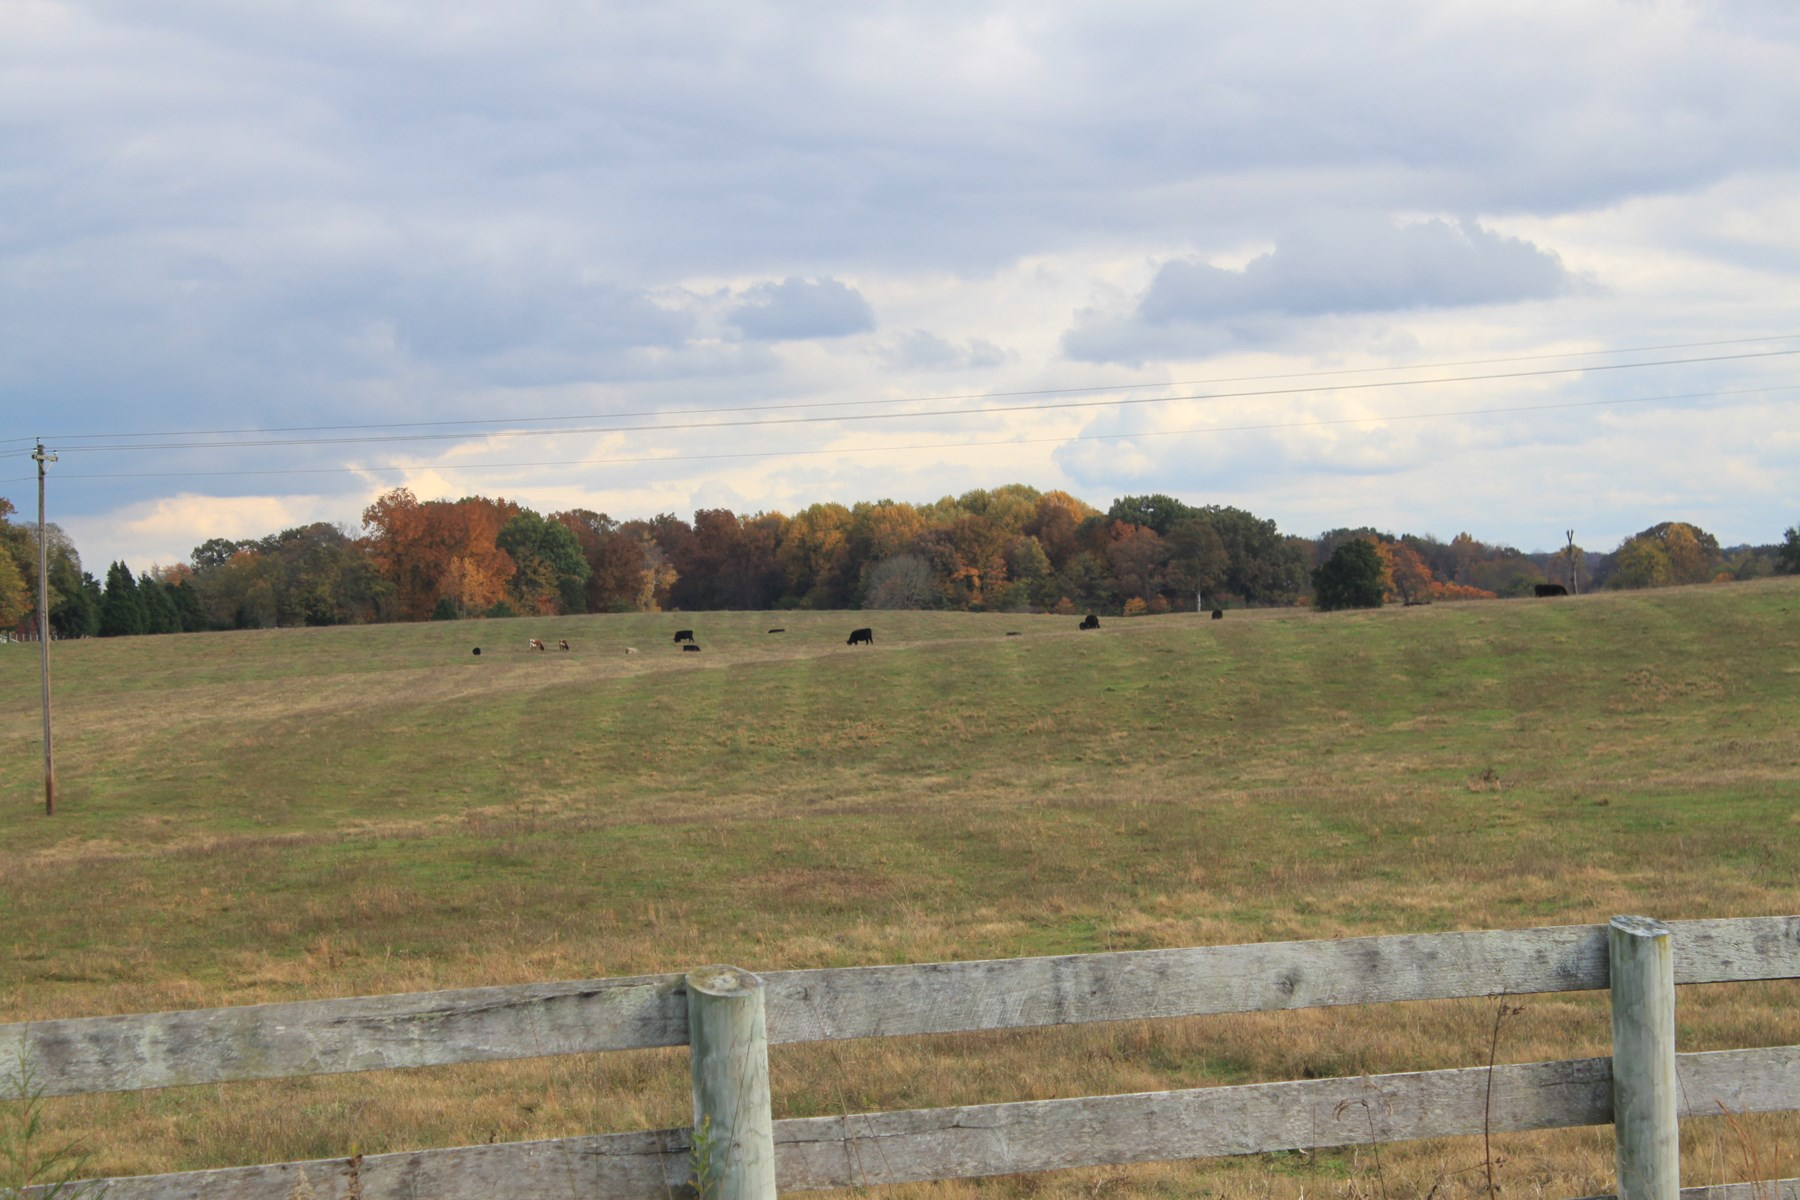 Prime Farm Land and Development Land in Bowling Green, KY